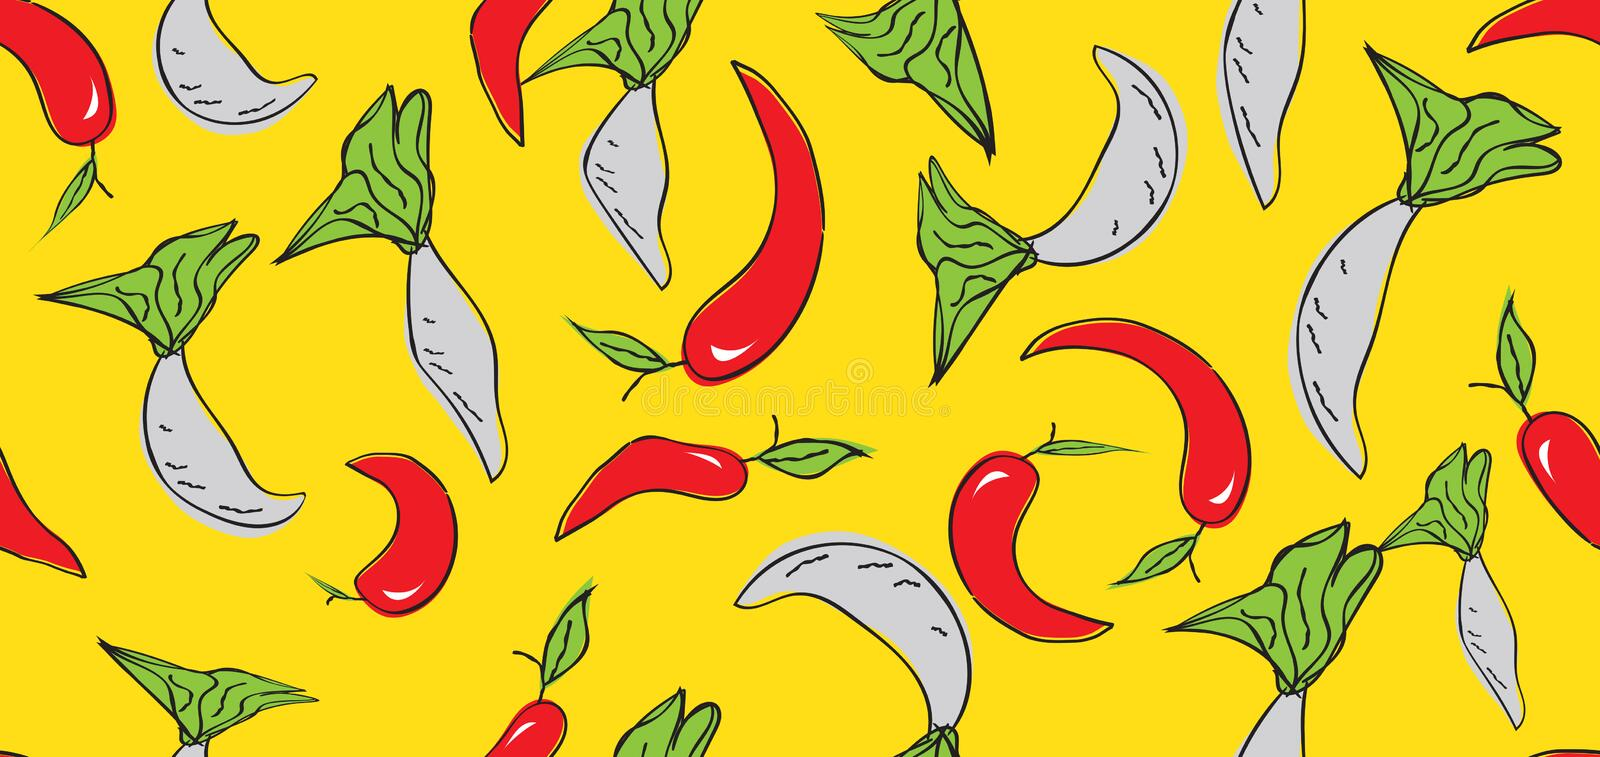 Vegetables seamless pattern, Vegetables banner template vector, web banner, web page, chili peppers, radish, cover, Healthy food stock images